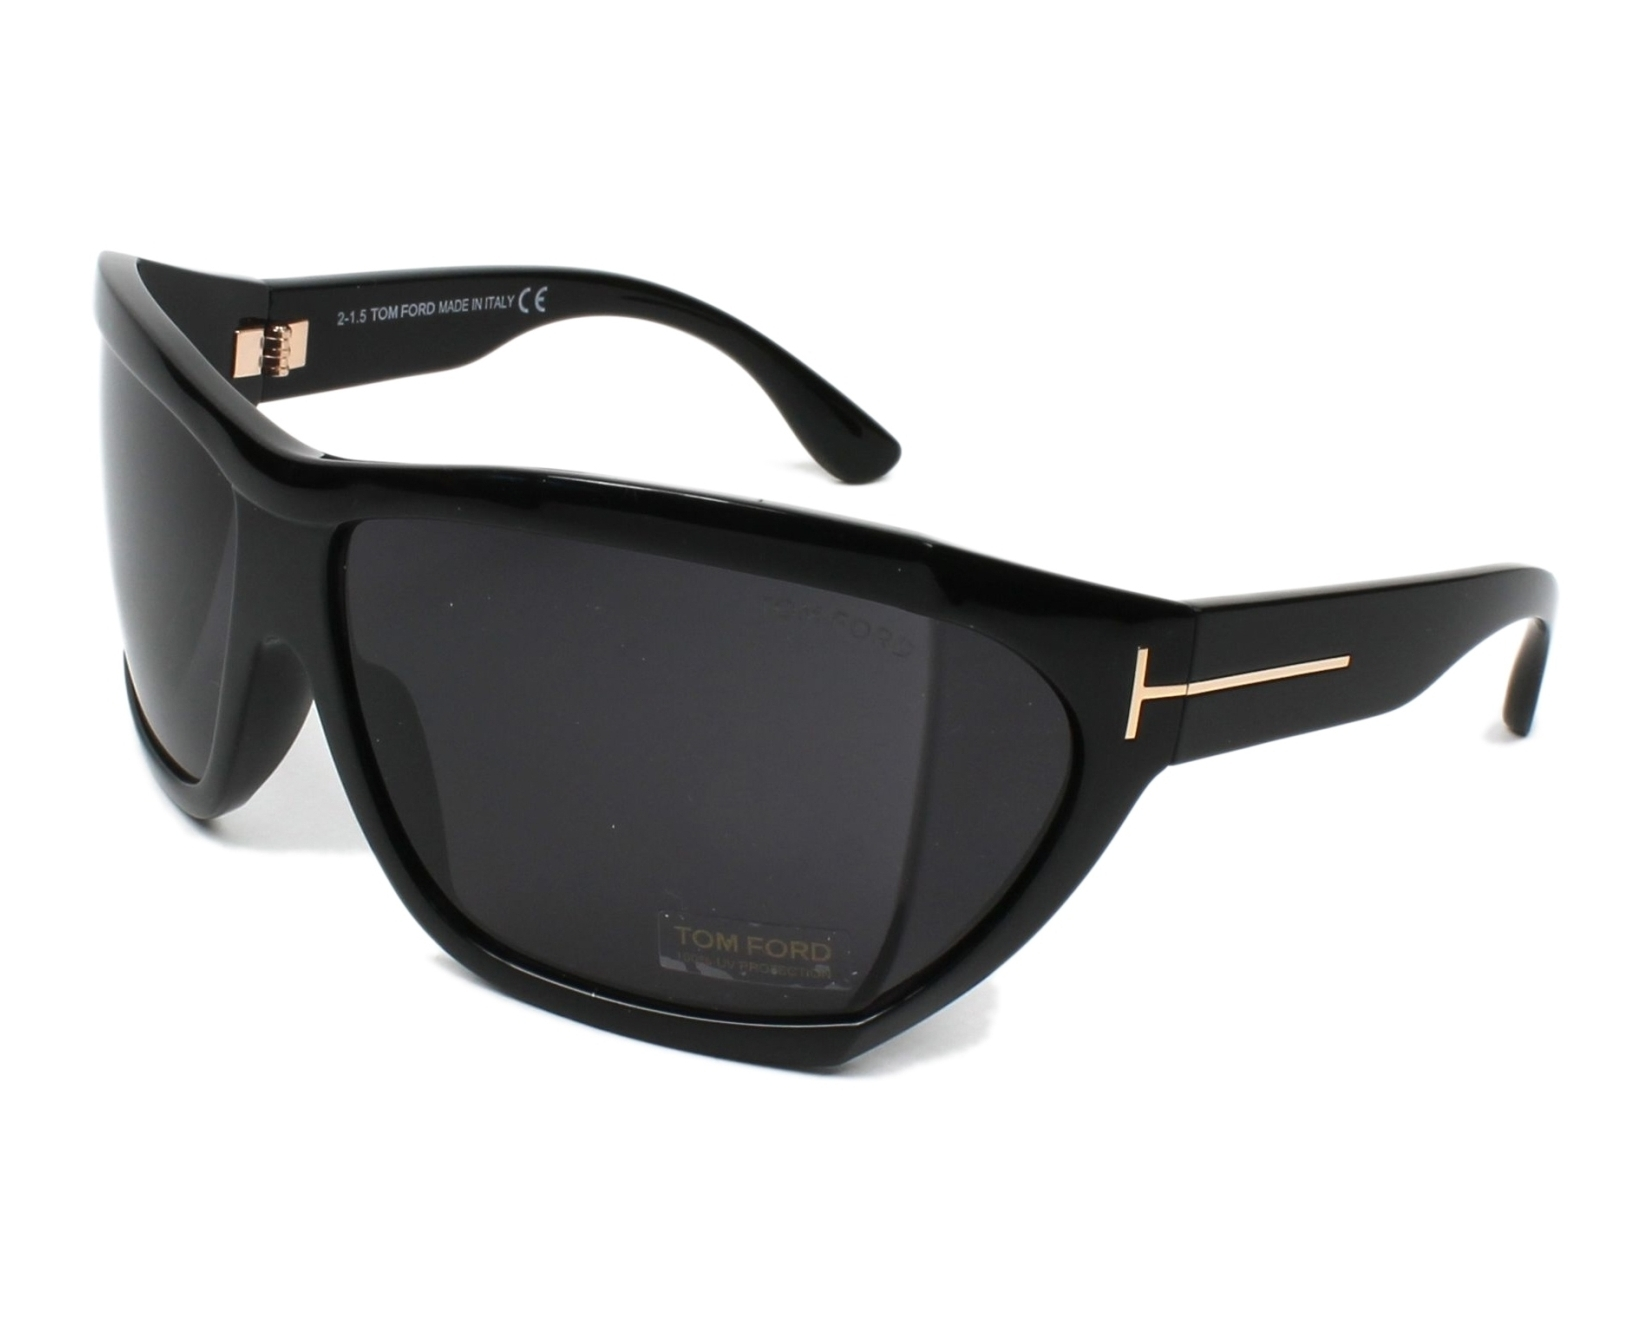 Buy Tom Ford Sunglasses TF-402 01A Online - Visionet